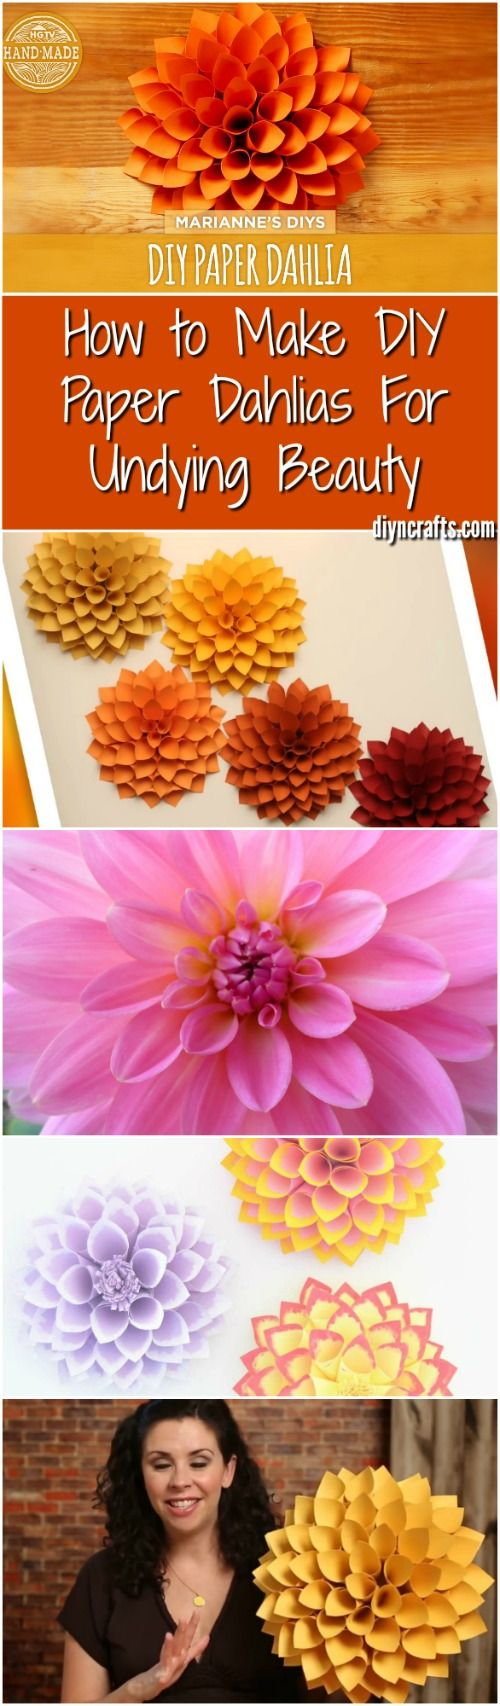 How to make beautiful paper dahlias diy crafts tutorial - Best 10 Paper Dahlia Ideas On Pinterest Paper Flowers Diy Handmade Paper Flowers And Paper Flowers Craft